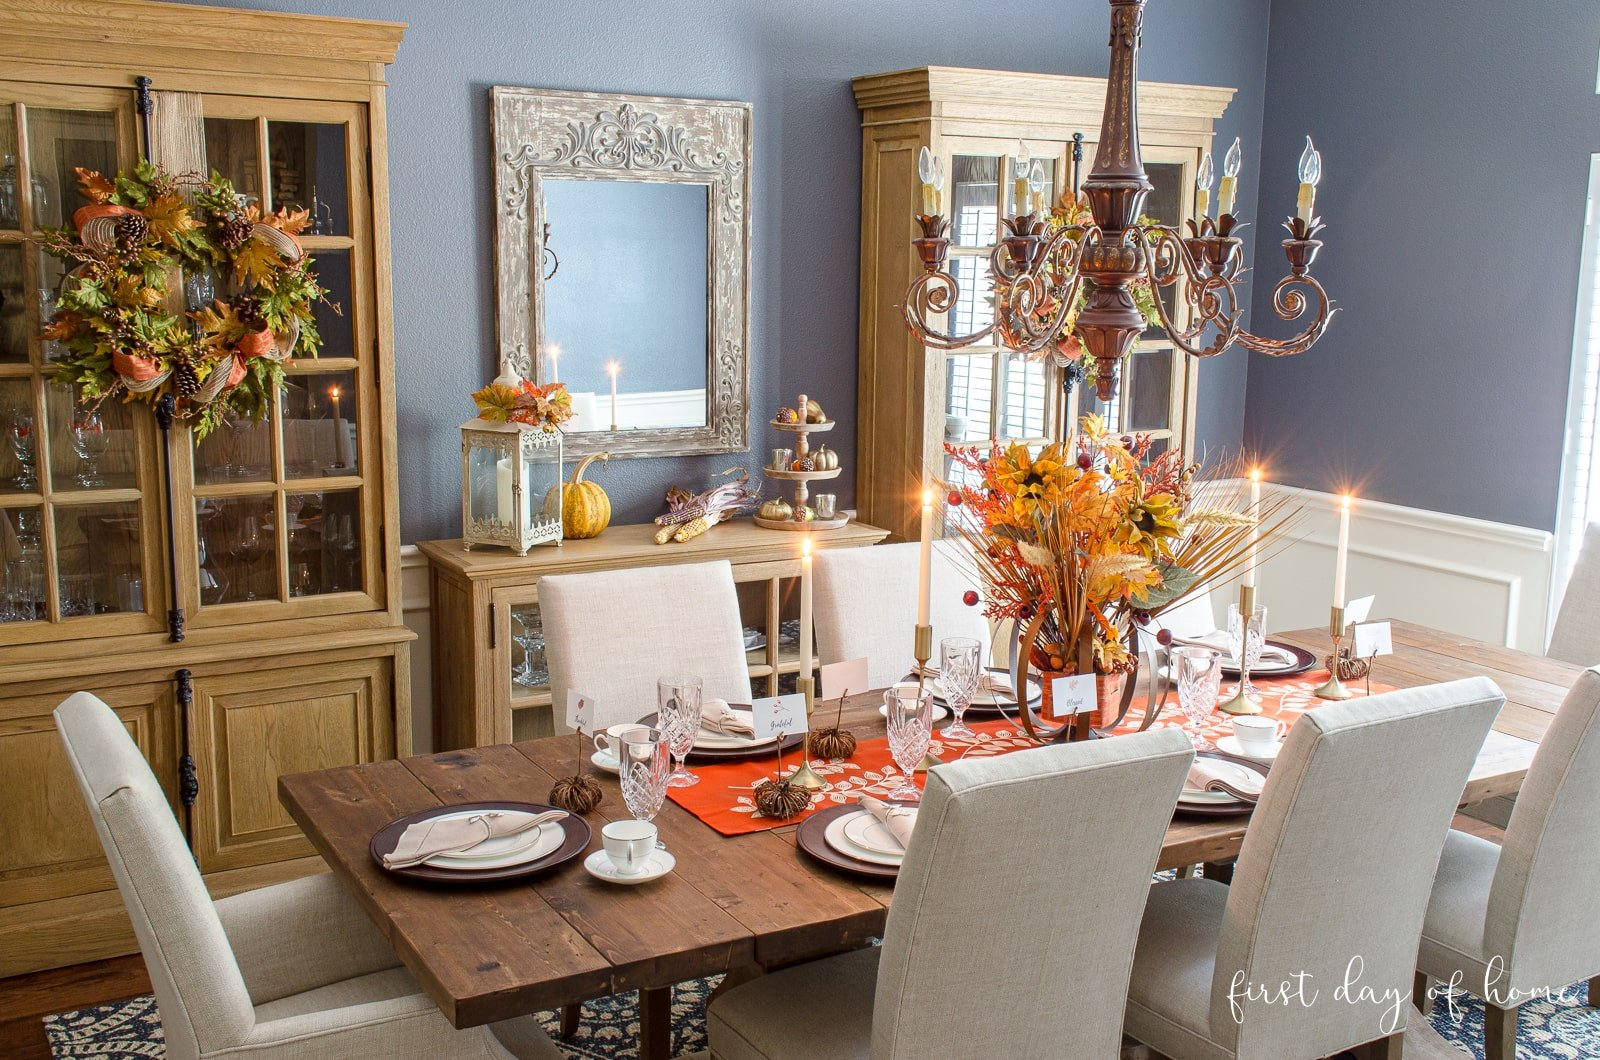 Fall dining room decor with fall wreaths on cabinets and formal tablescape